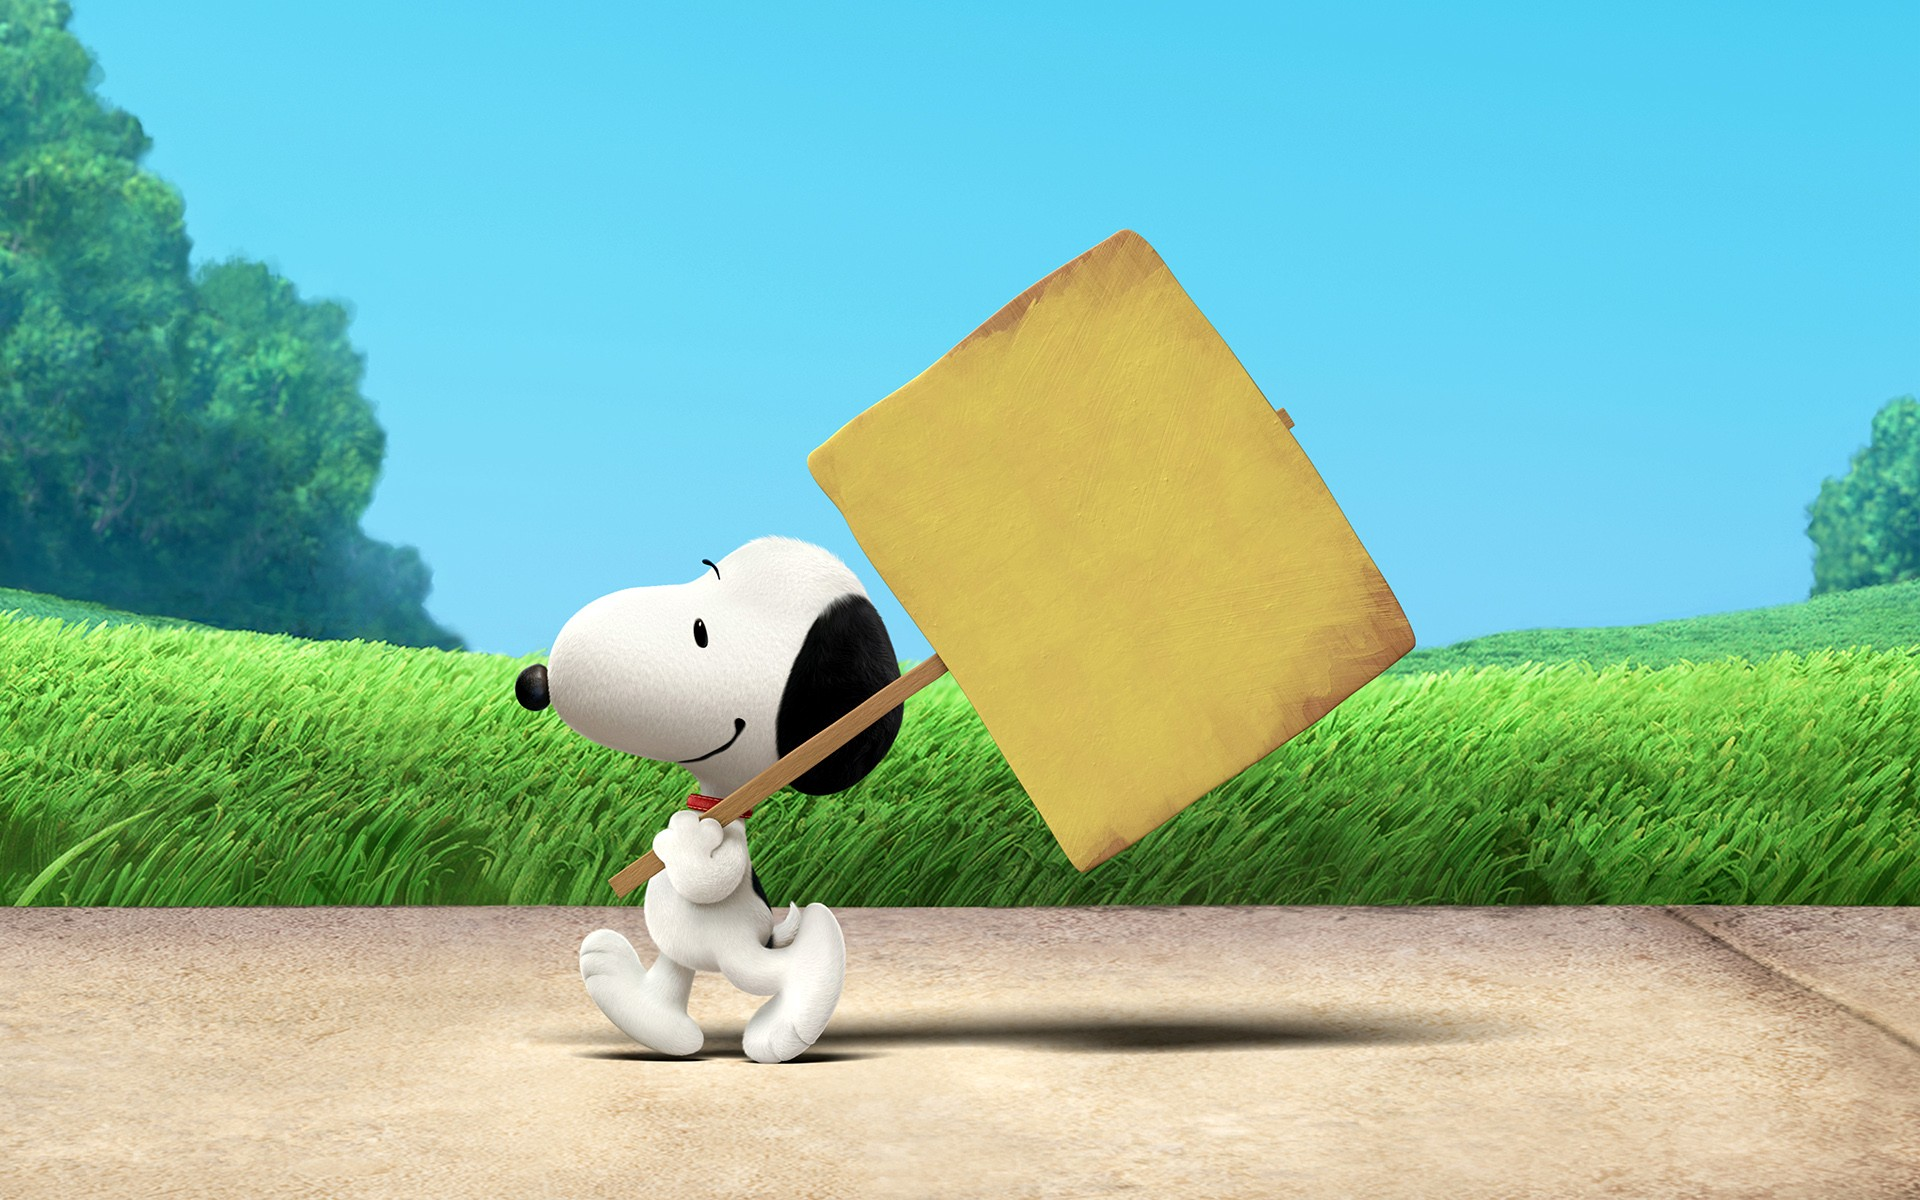 Snoopy wallpaper download free high resolution backgrounds for 1920x1200 snoopy wallpaper 1920x1200 hd for mobile voltagebd Image collections